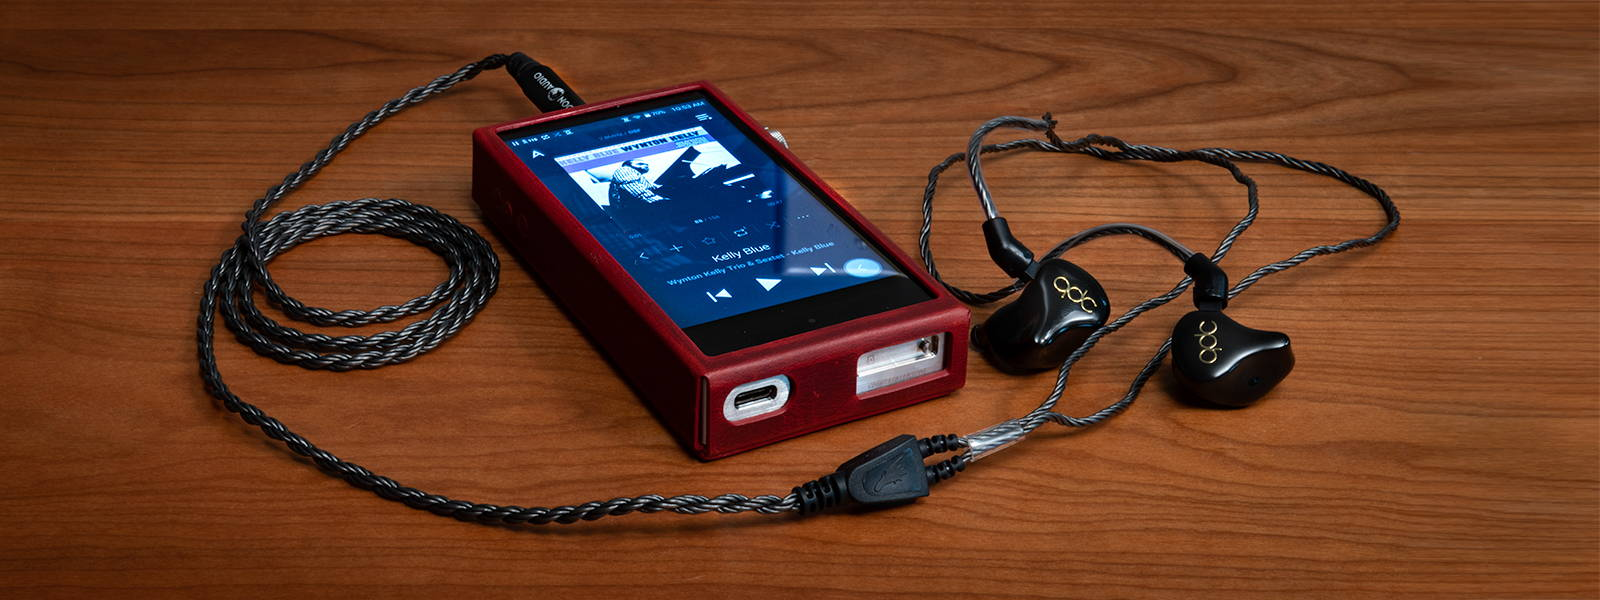 qdc 8SS IEM with Black Dragon IEM cable and Astell&Kern SP1000 DAP